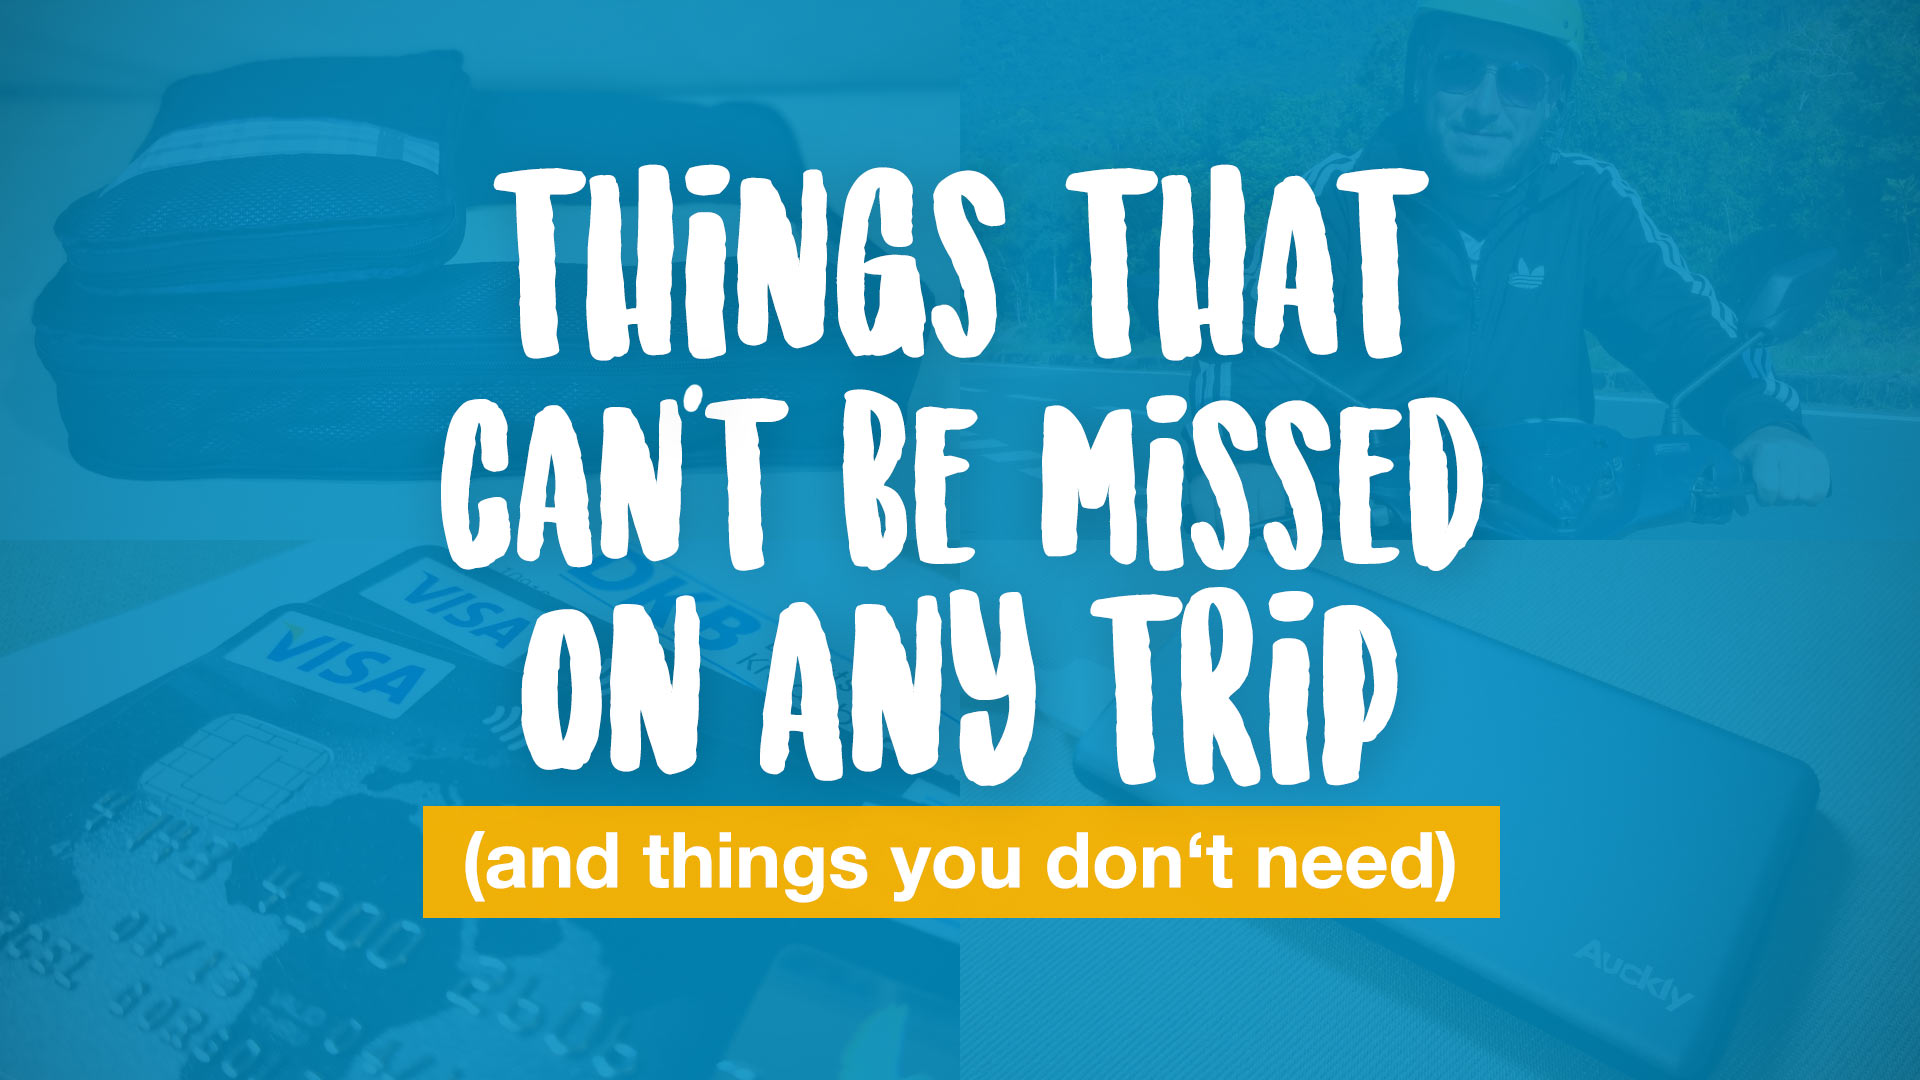 13 things that can't be missed on any trip (and 7 that you don't need)